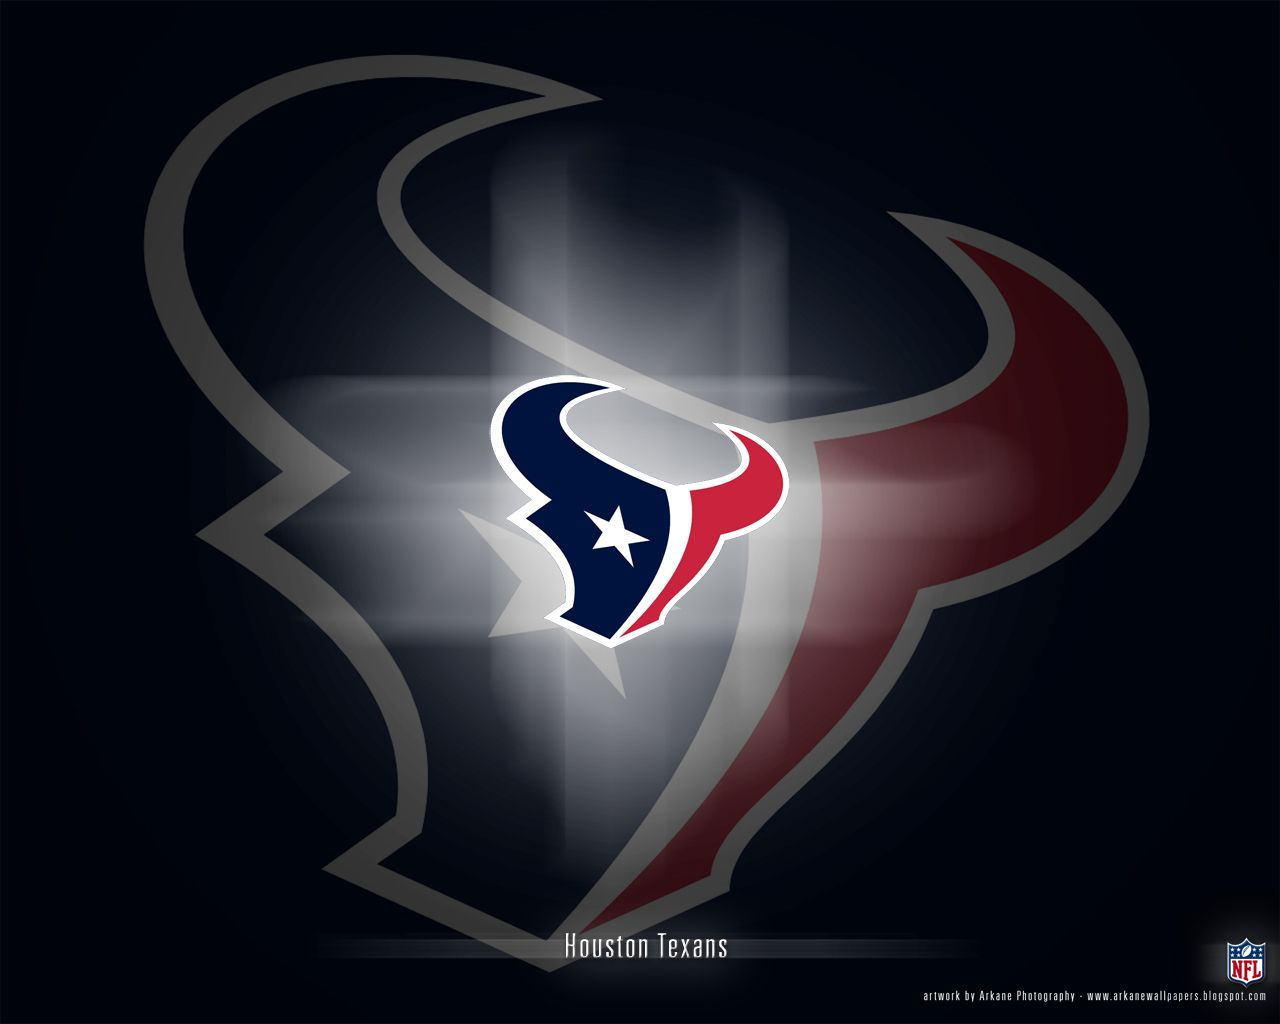 Pics photos houston texans logo chris creamer s sports - Houston Texans Football Nfl Wallpaper X